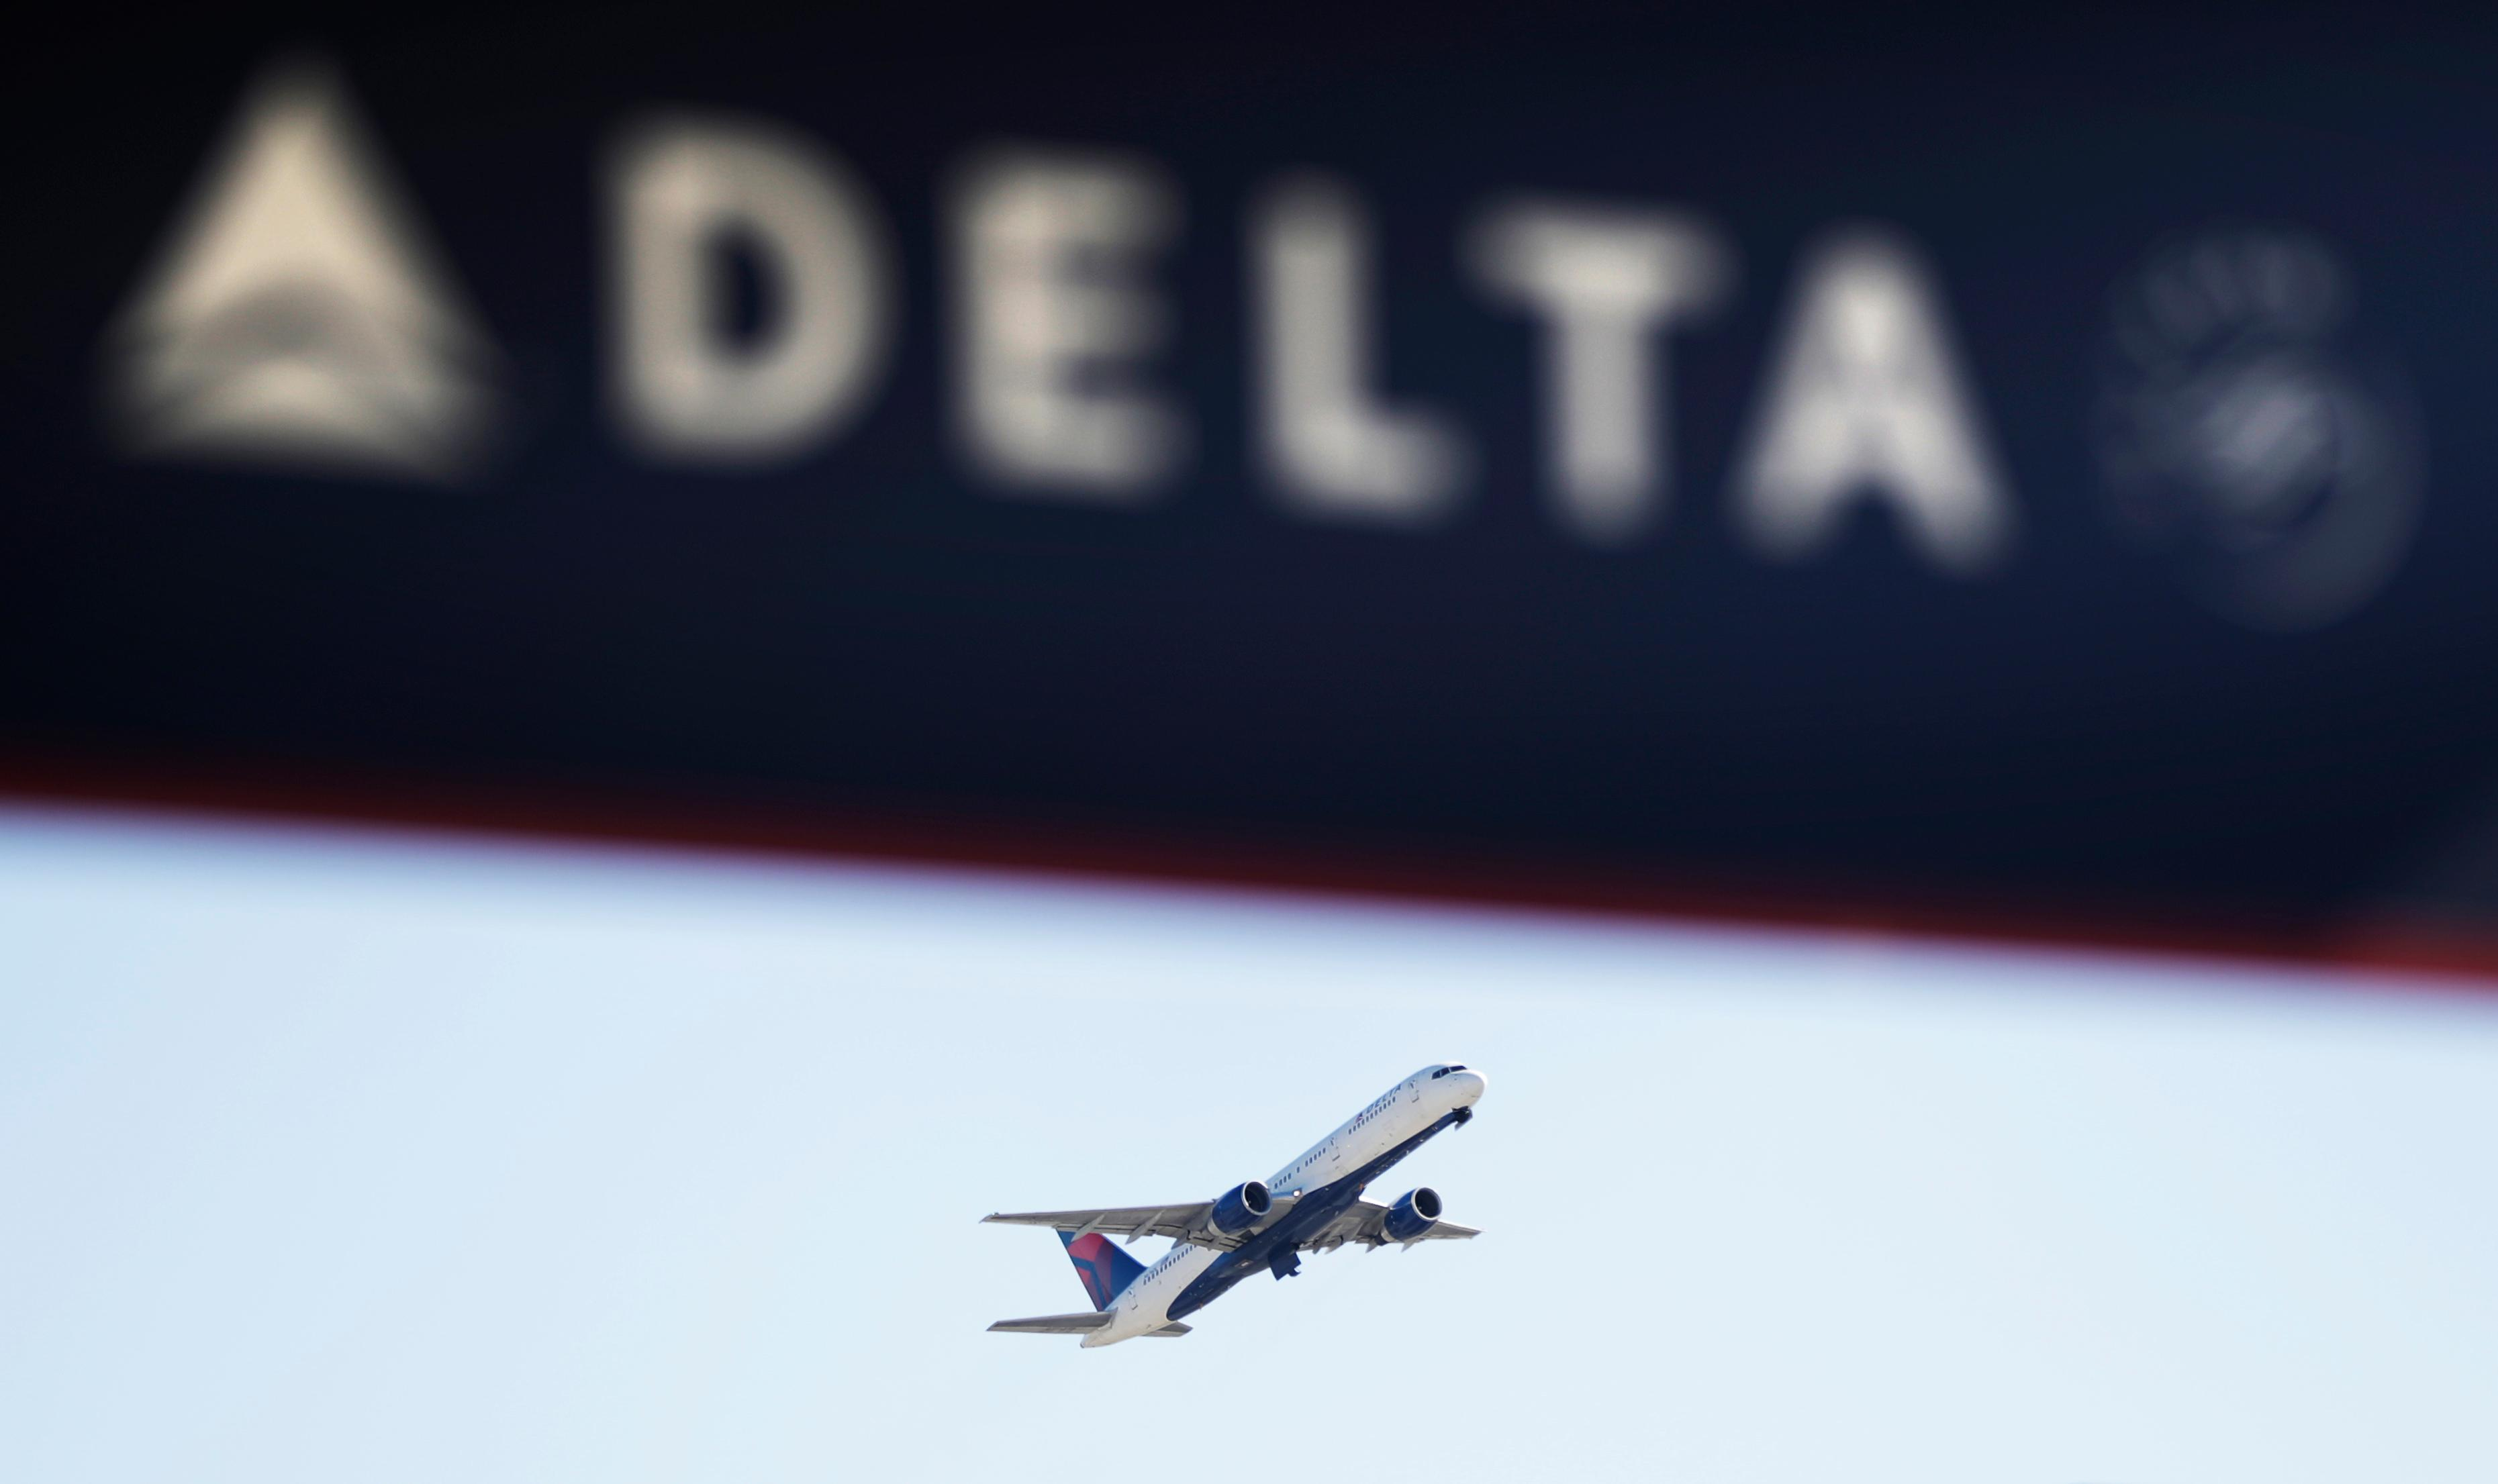 FILE - In this Jan. 30, 2017, file photo, a Delta Air Lines flight takes off from Hartsfield-Jackson Atlanta International Airport in Atlanta.{&amp;nbsp;} (AP Photo/David Goldman, File)<p></p>